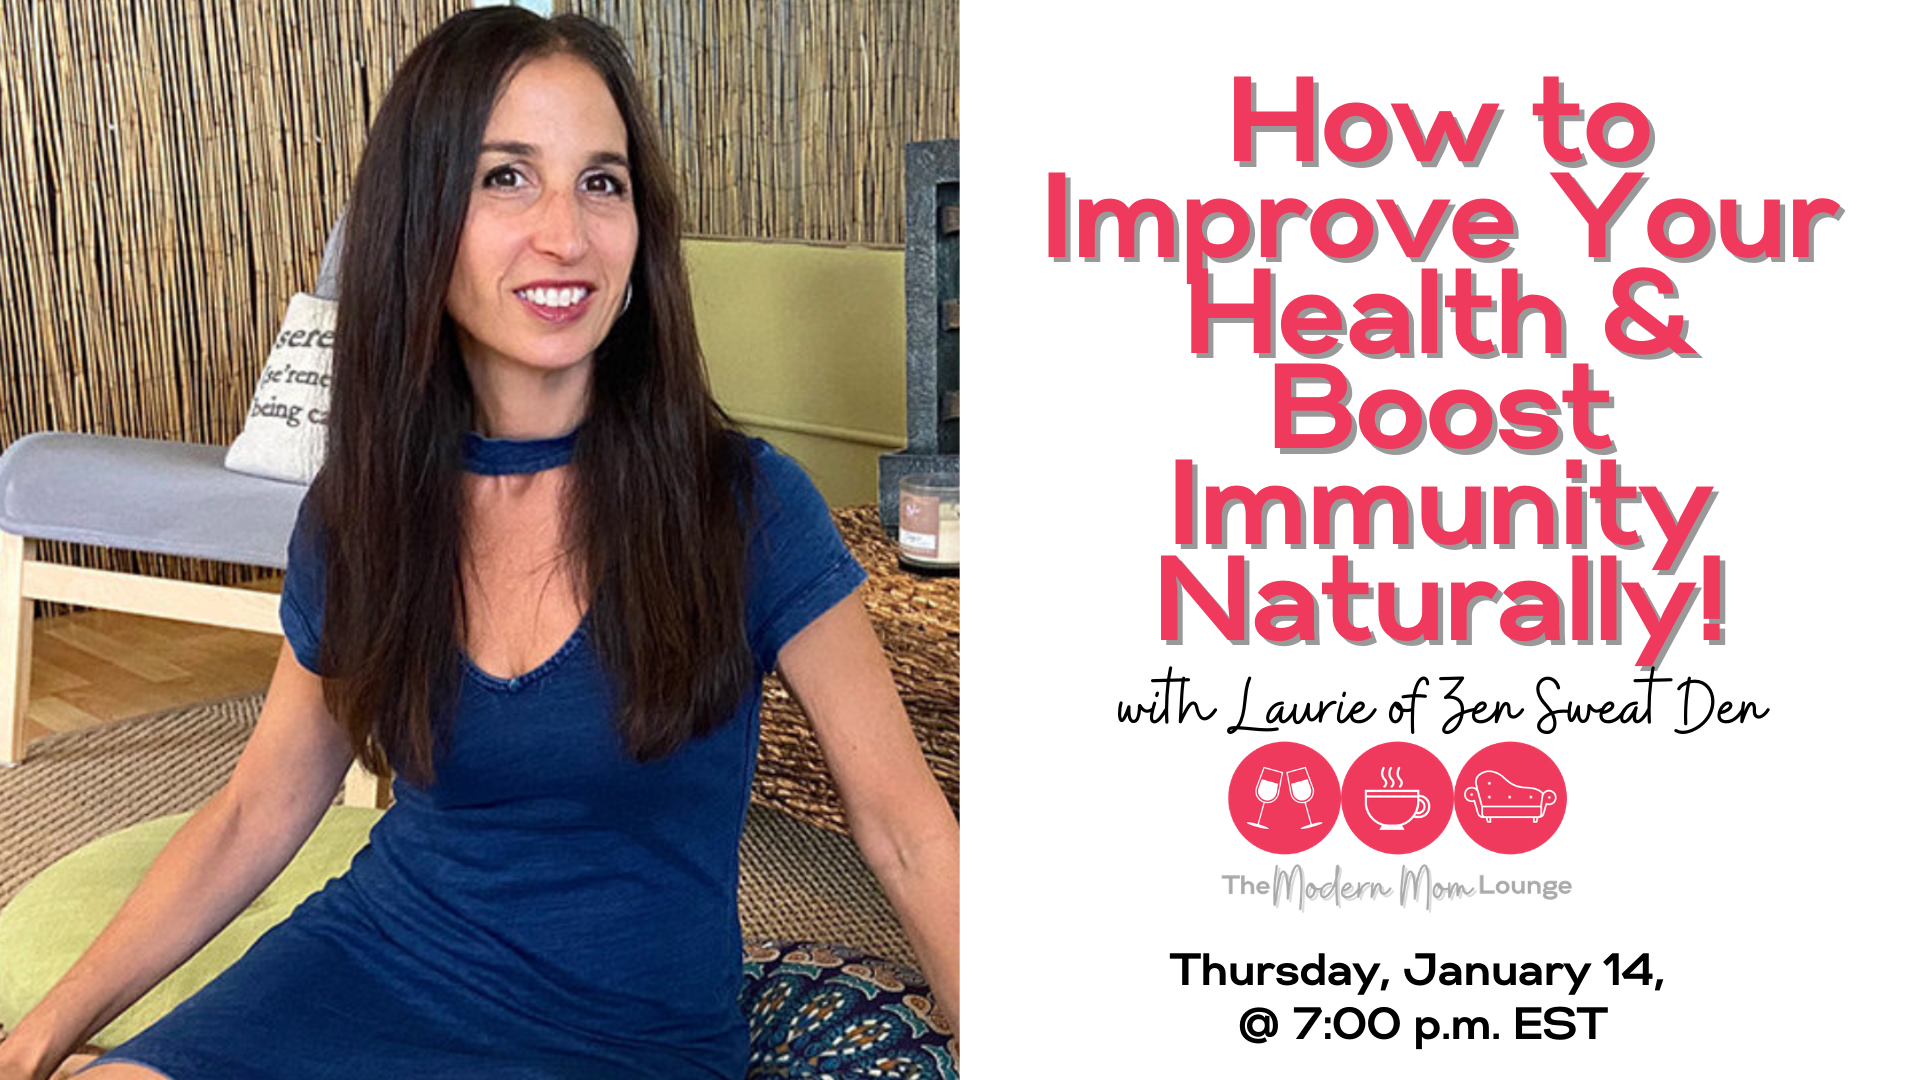 How to Improve Your Health & Boost Immunity Naturally!